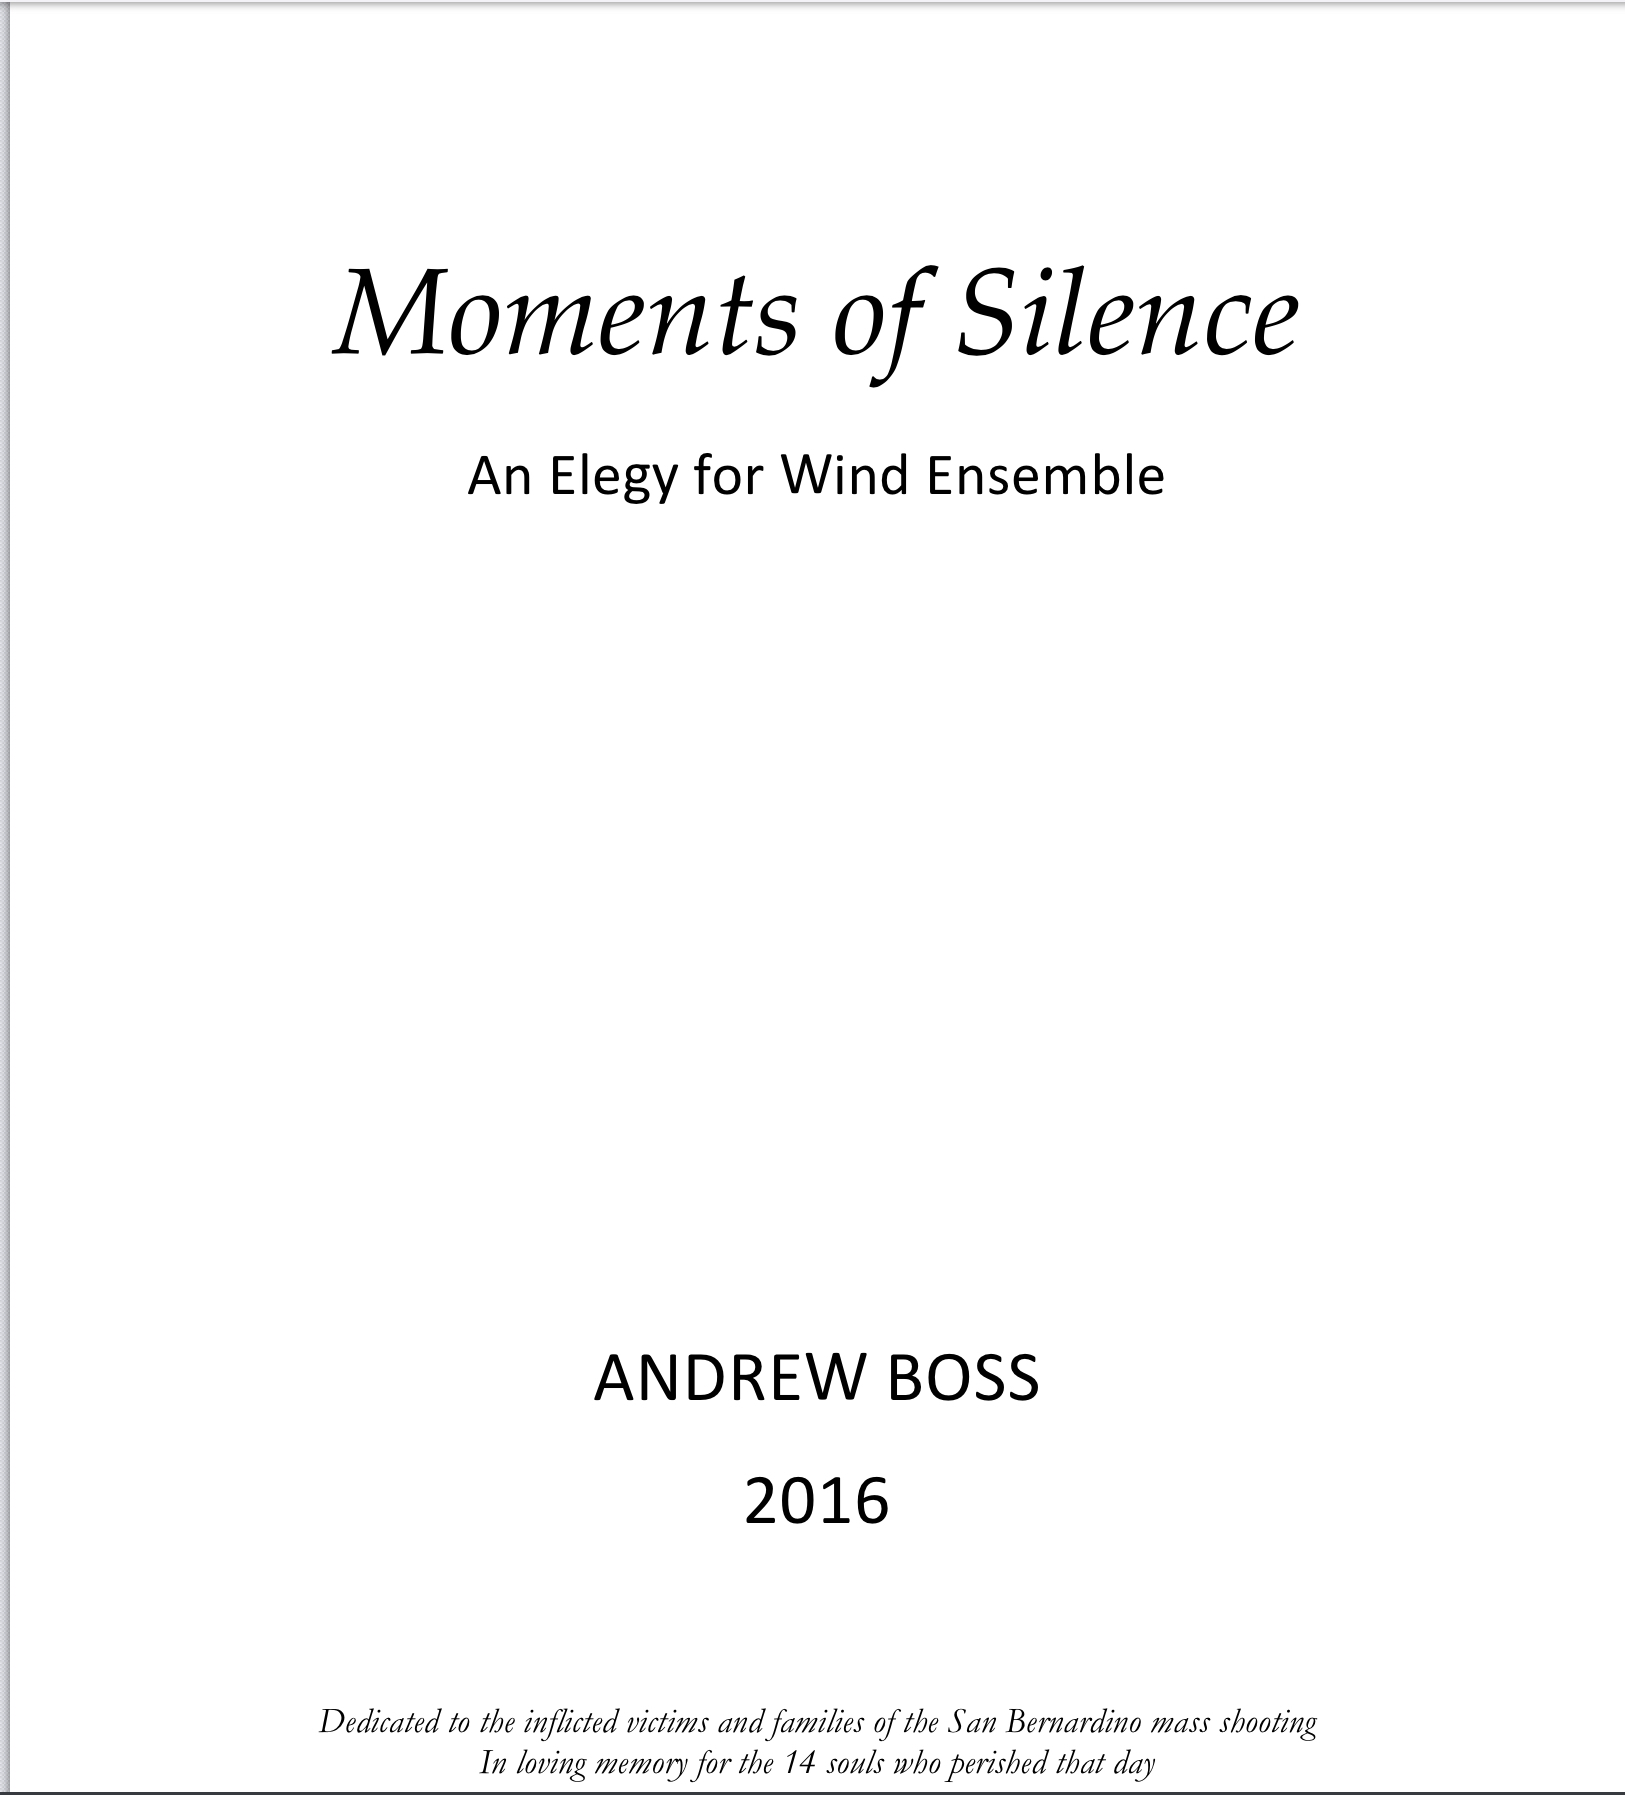 Moments Of Silence (PDF Version) by Andrew Boss